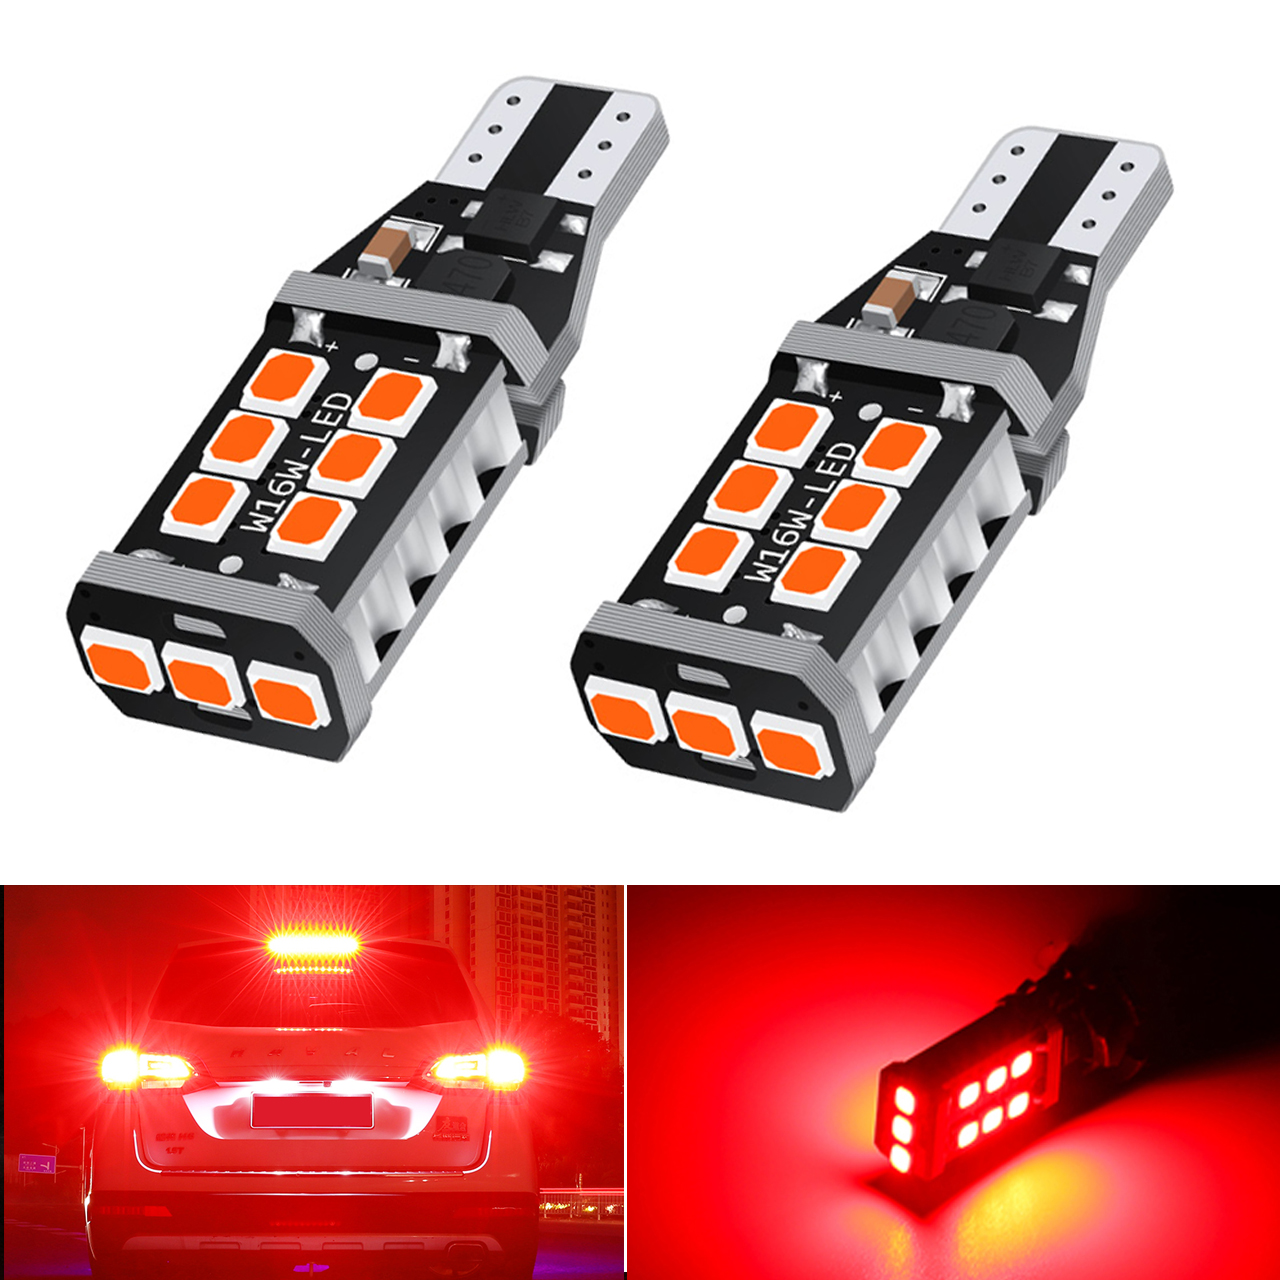 2x T15 W16W 15SMD 2835 LED CANBUS Super Bright NO ERROR Car Tail Bulb Brake Light Auto Reverse Lamp Turn Signals Red White Amber